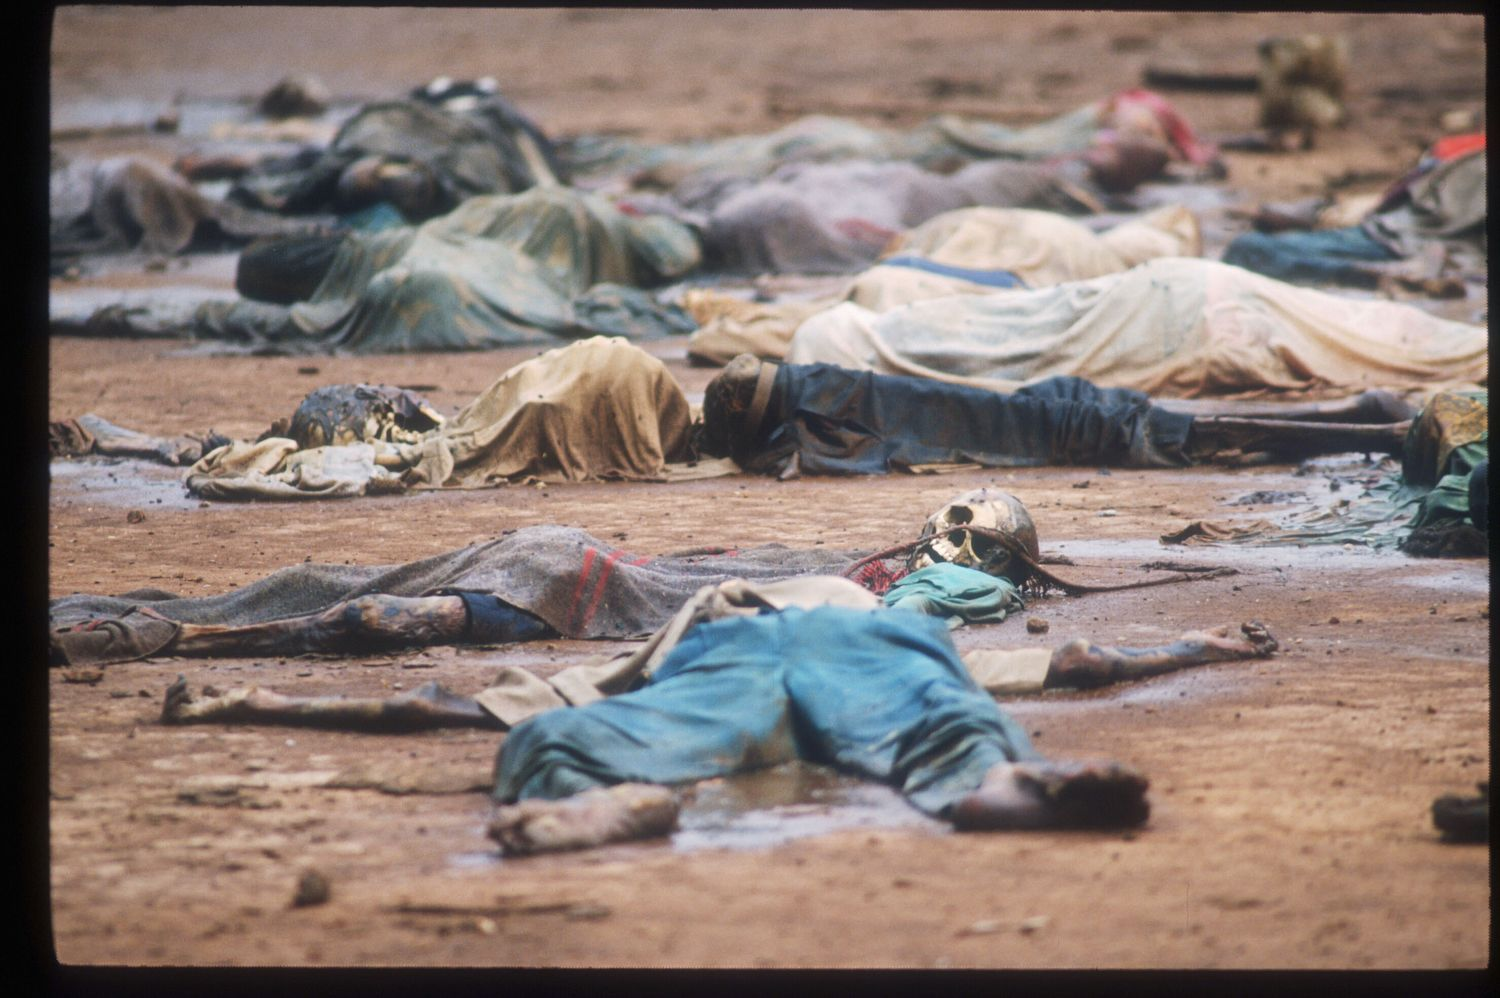 188198 55: Skeletal remains are strewn on the grounds of the Catholic mission May 5, 1994 in Rukara, Rwanda. Hundreds of Tutsis were killed at the Rukara Catholic mission April, 1994 in one of the worst massacres of the Rwandan violence. (Photo by Scott Peterson/Liaison)